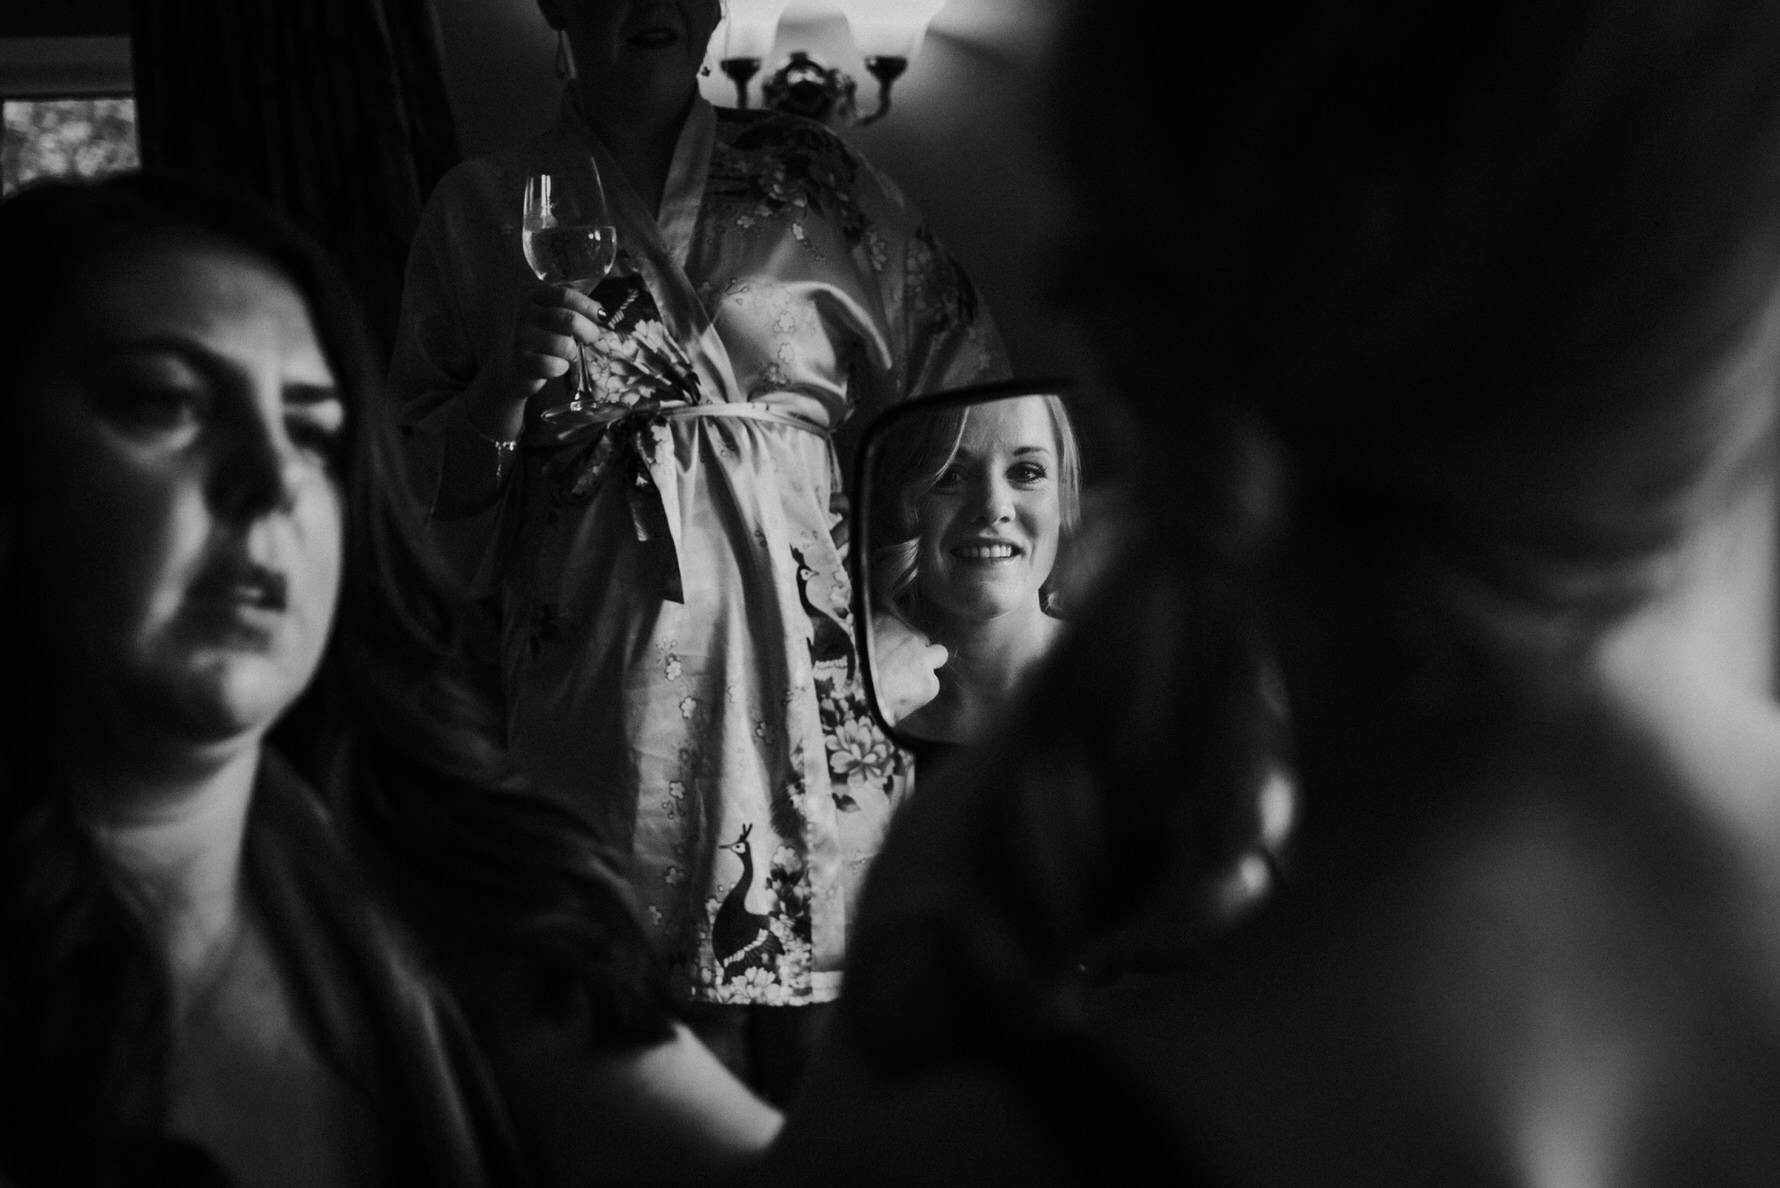 Candid unposed wedding photojournalism by Louise Jacob - An image of a brides reflection in the mirror